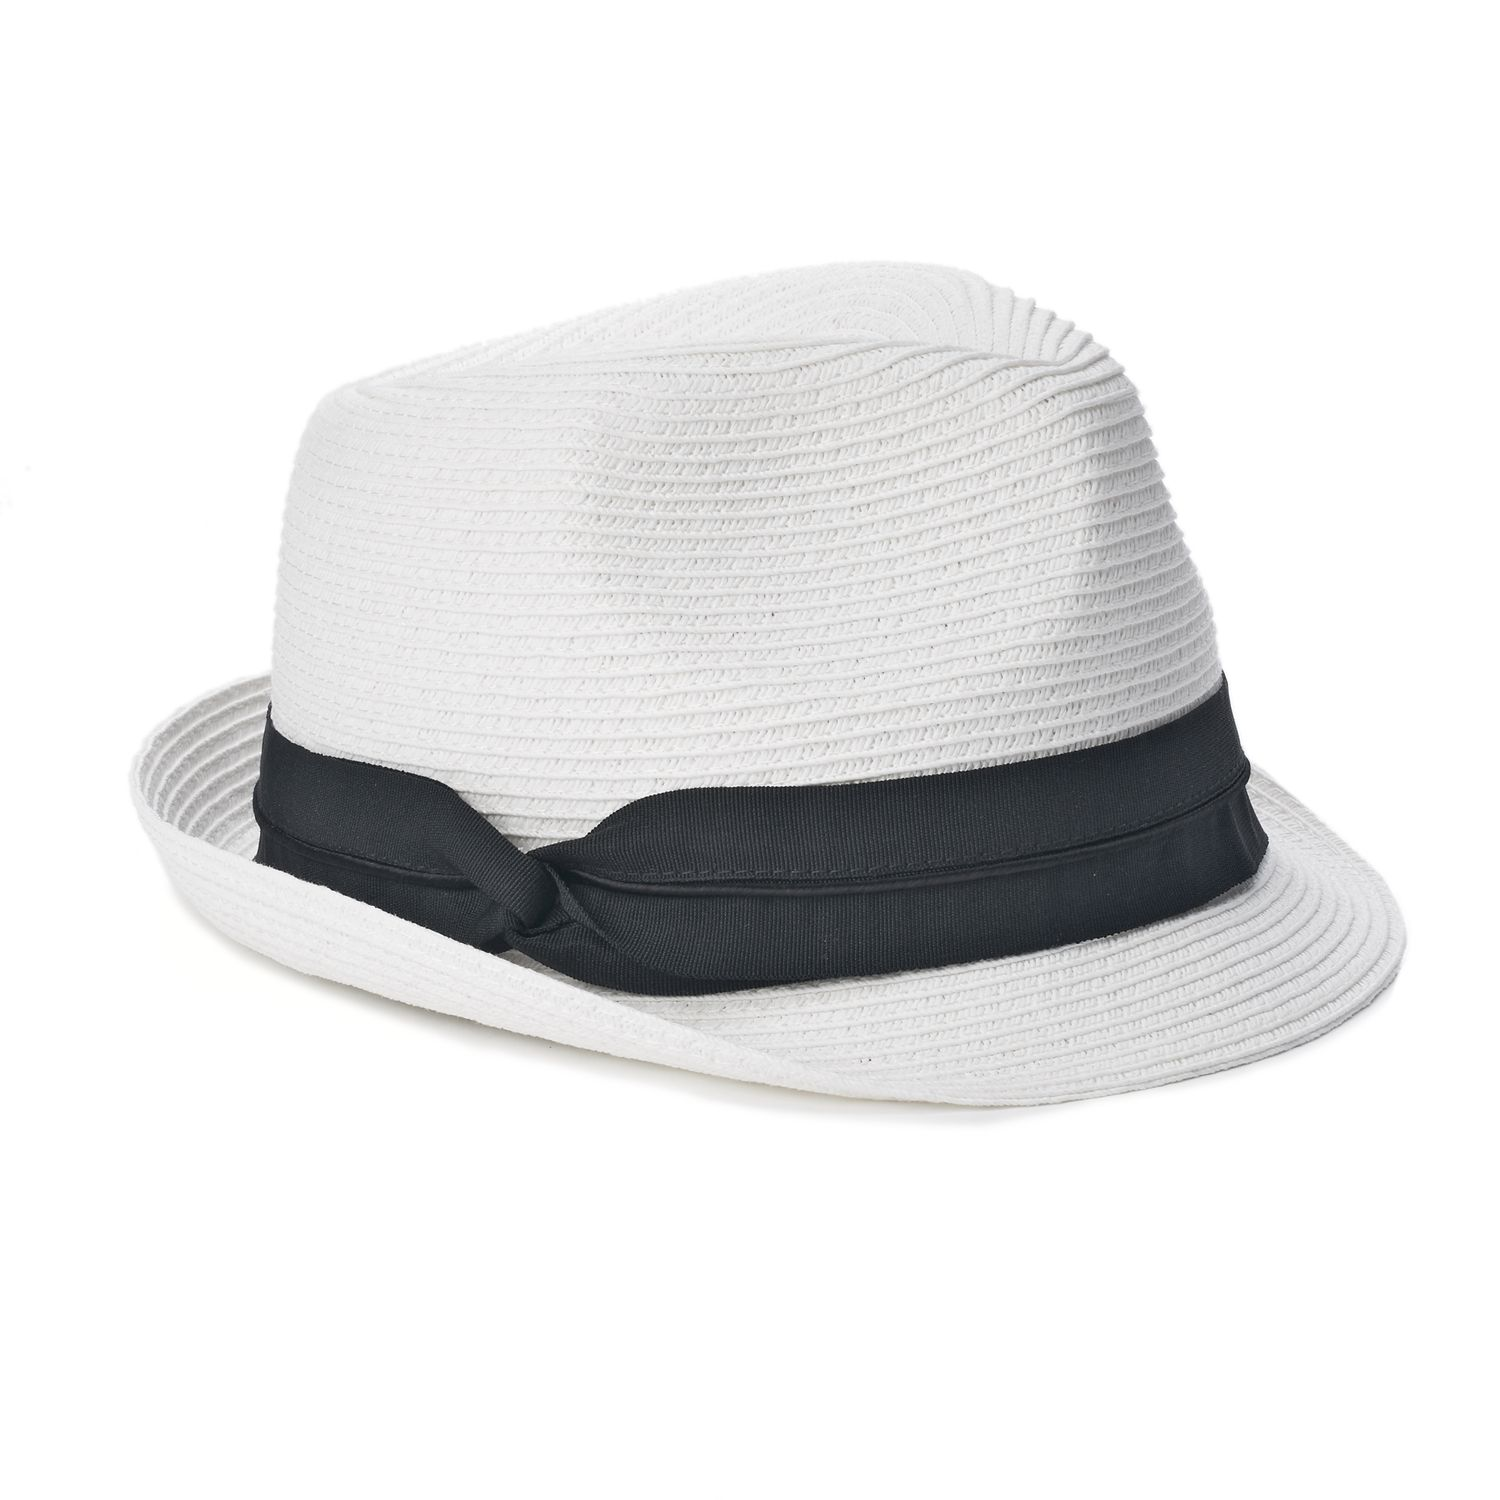 Women\u0027s SONOMA Goods for Life™ Grosgrain Band Classic Fedora Womens Hats - Accessories, Accessories | Kohl\u0027s